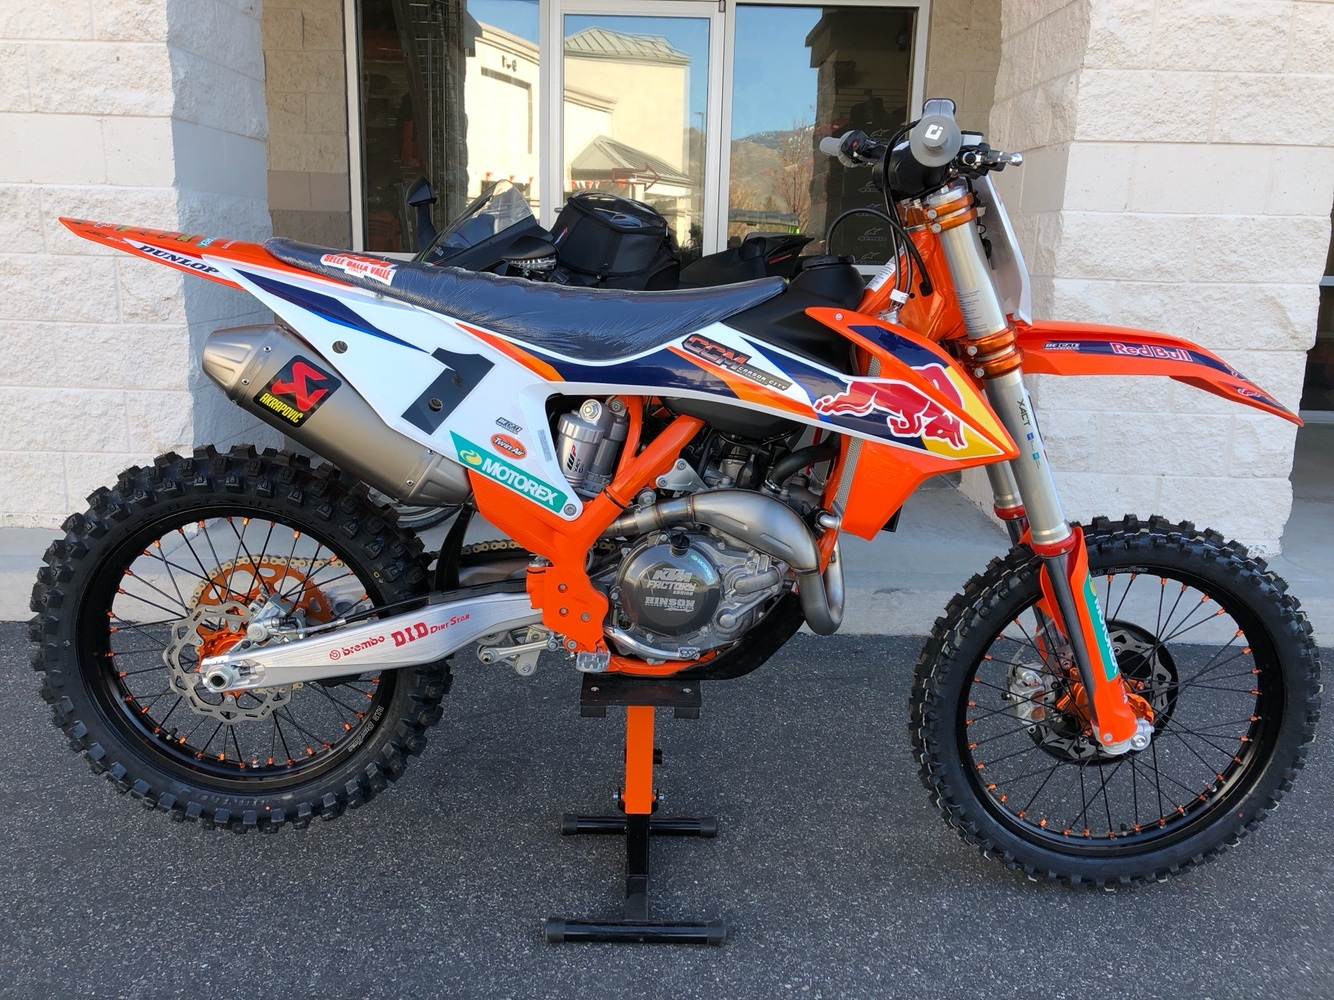 New 2020 KTM 450 XC-F Motorcycles in Carson City, NV